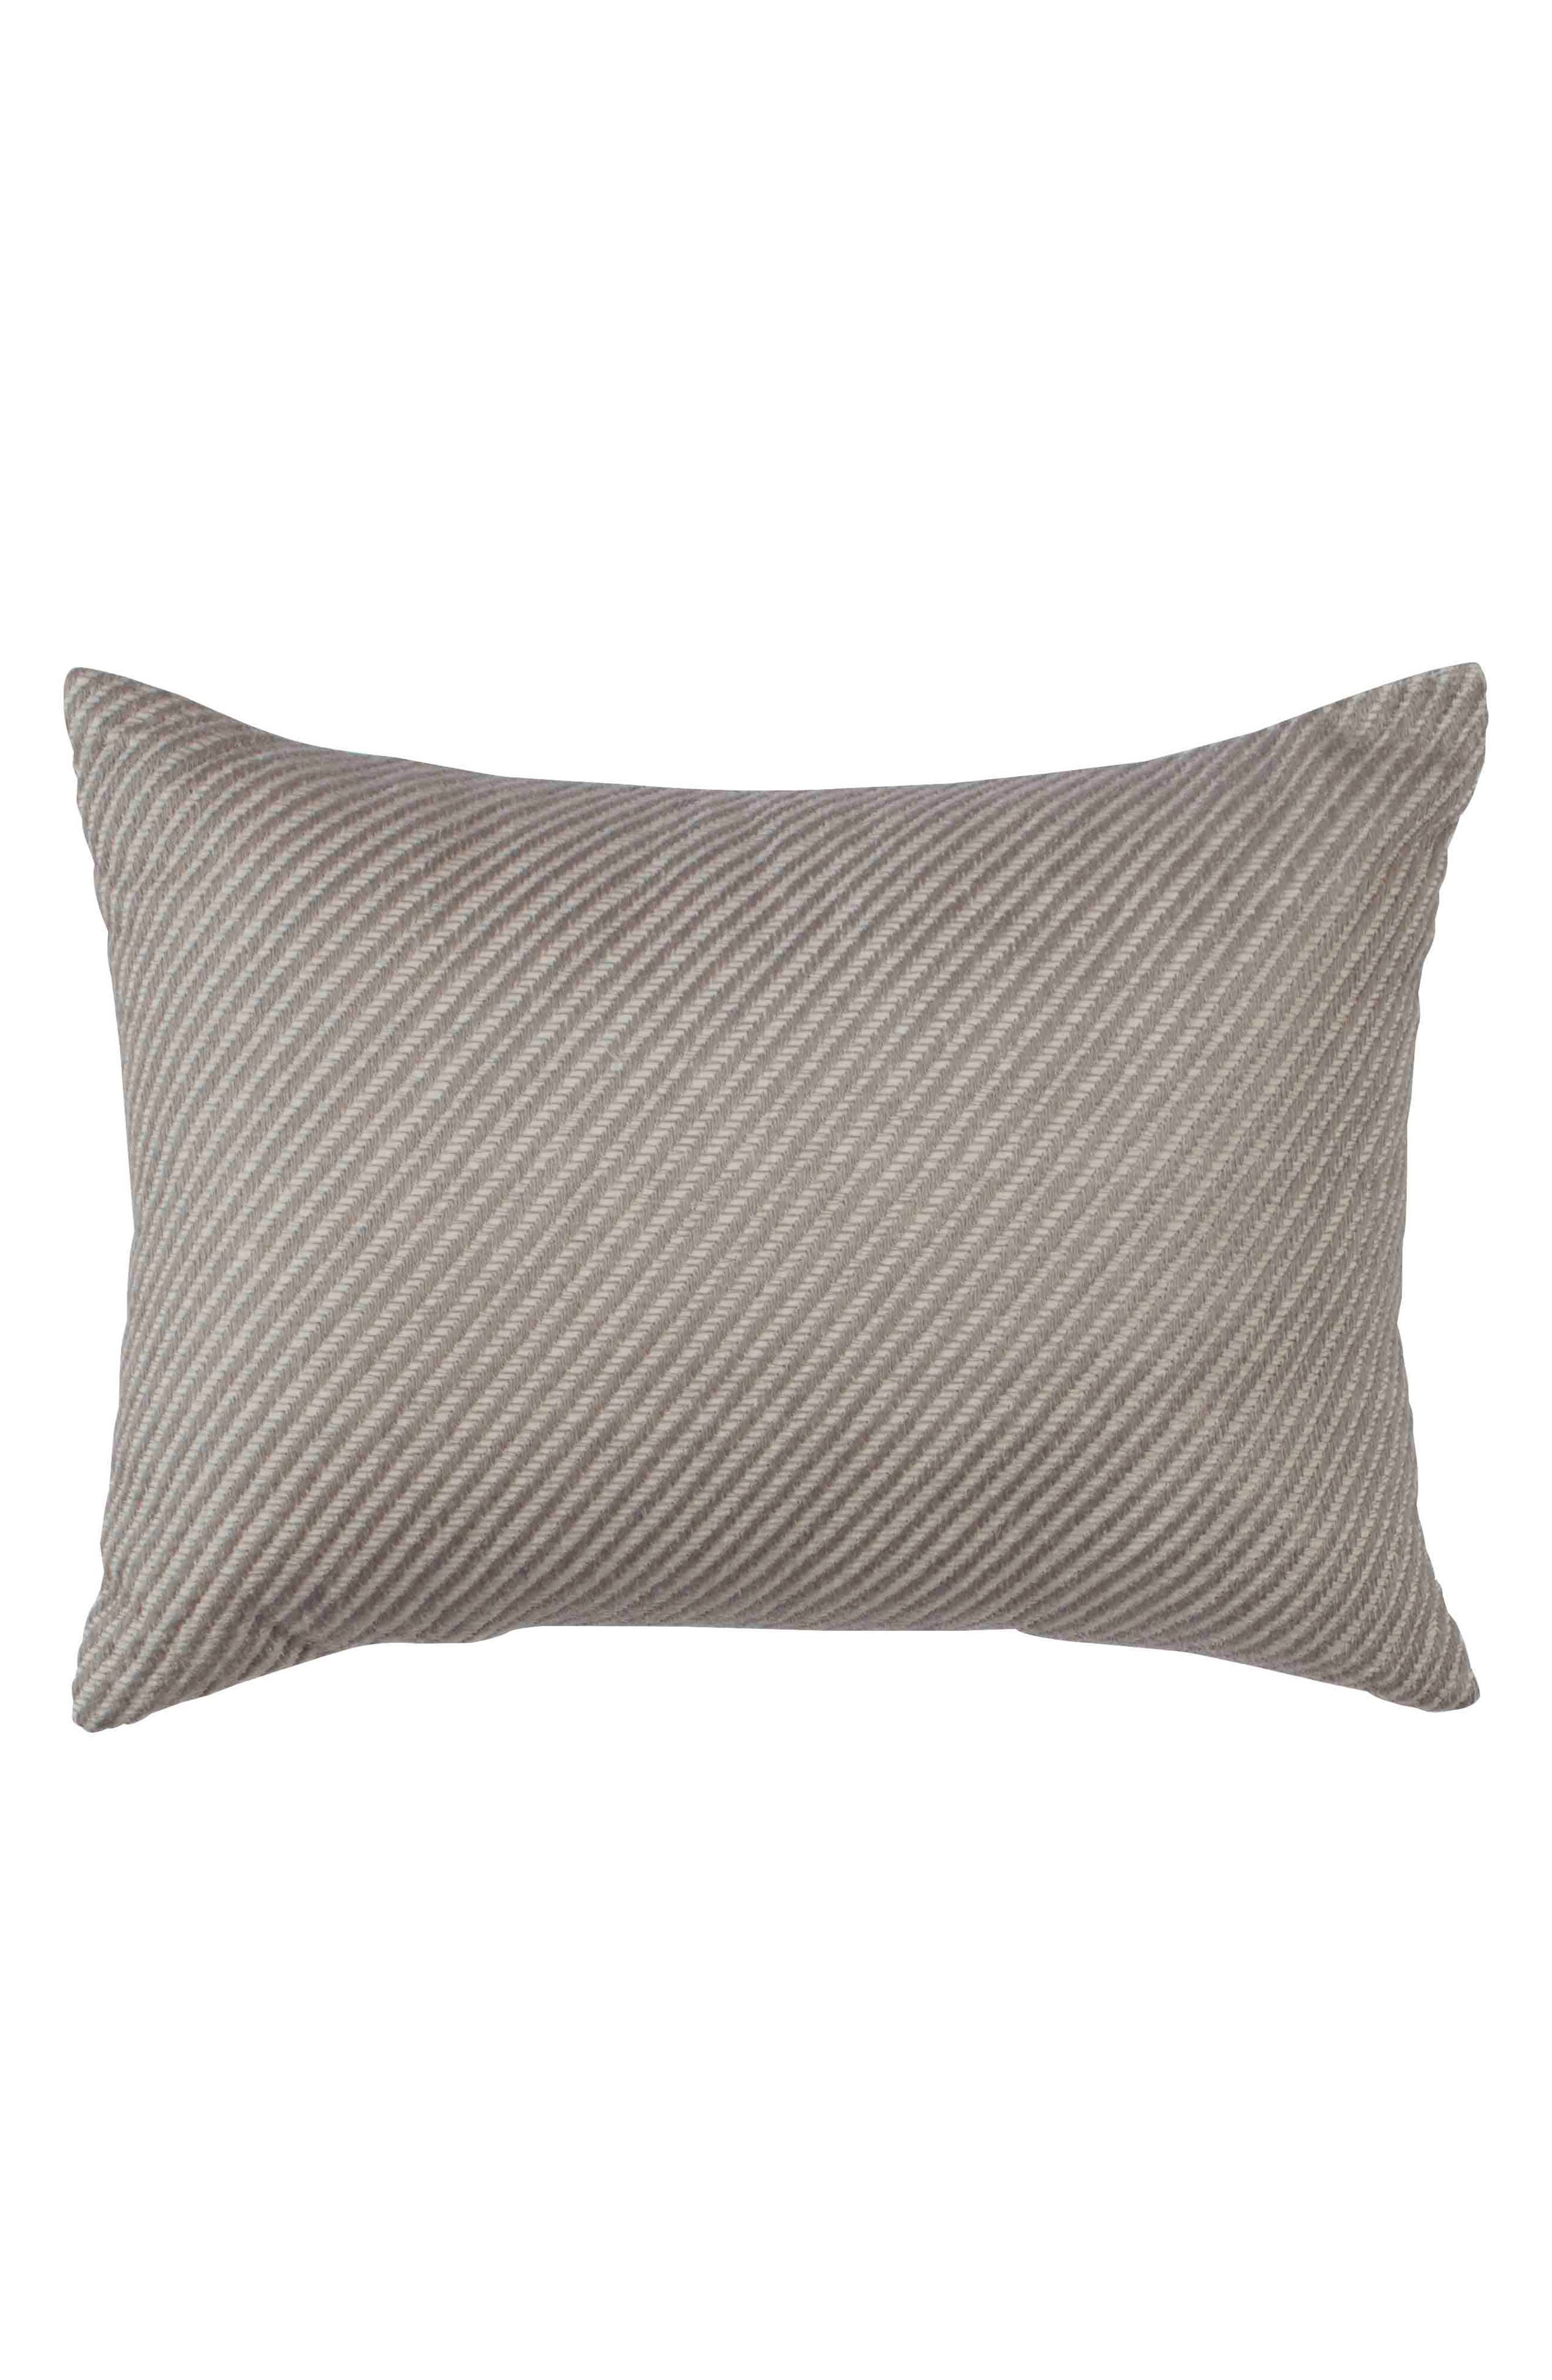 Tulare Twill Accent Pillow,                             Main thumbnail 1, color,                             NATURAL